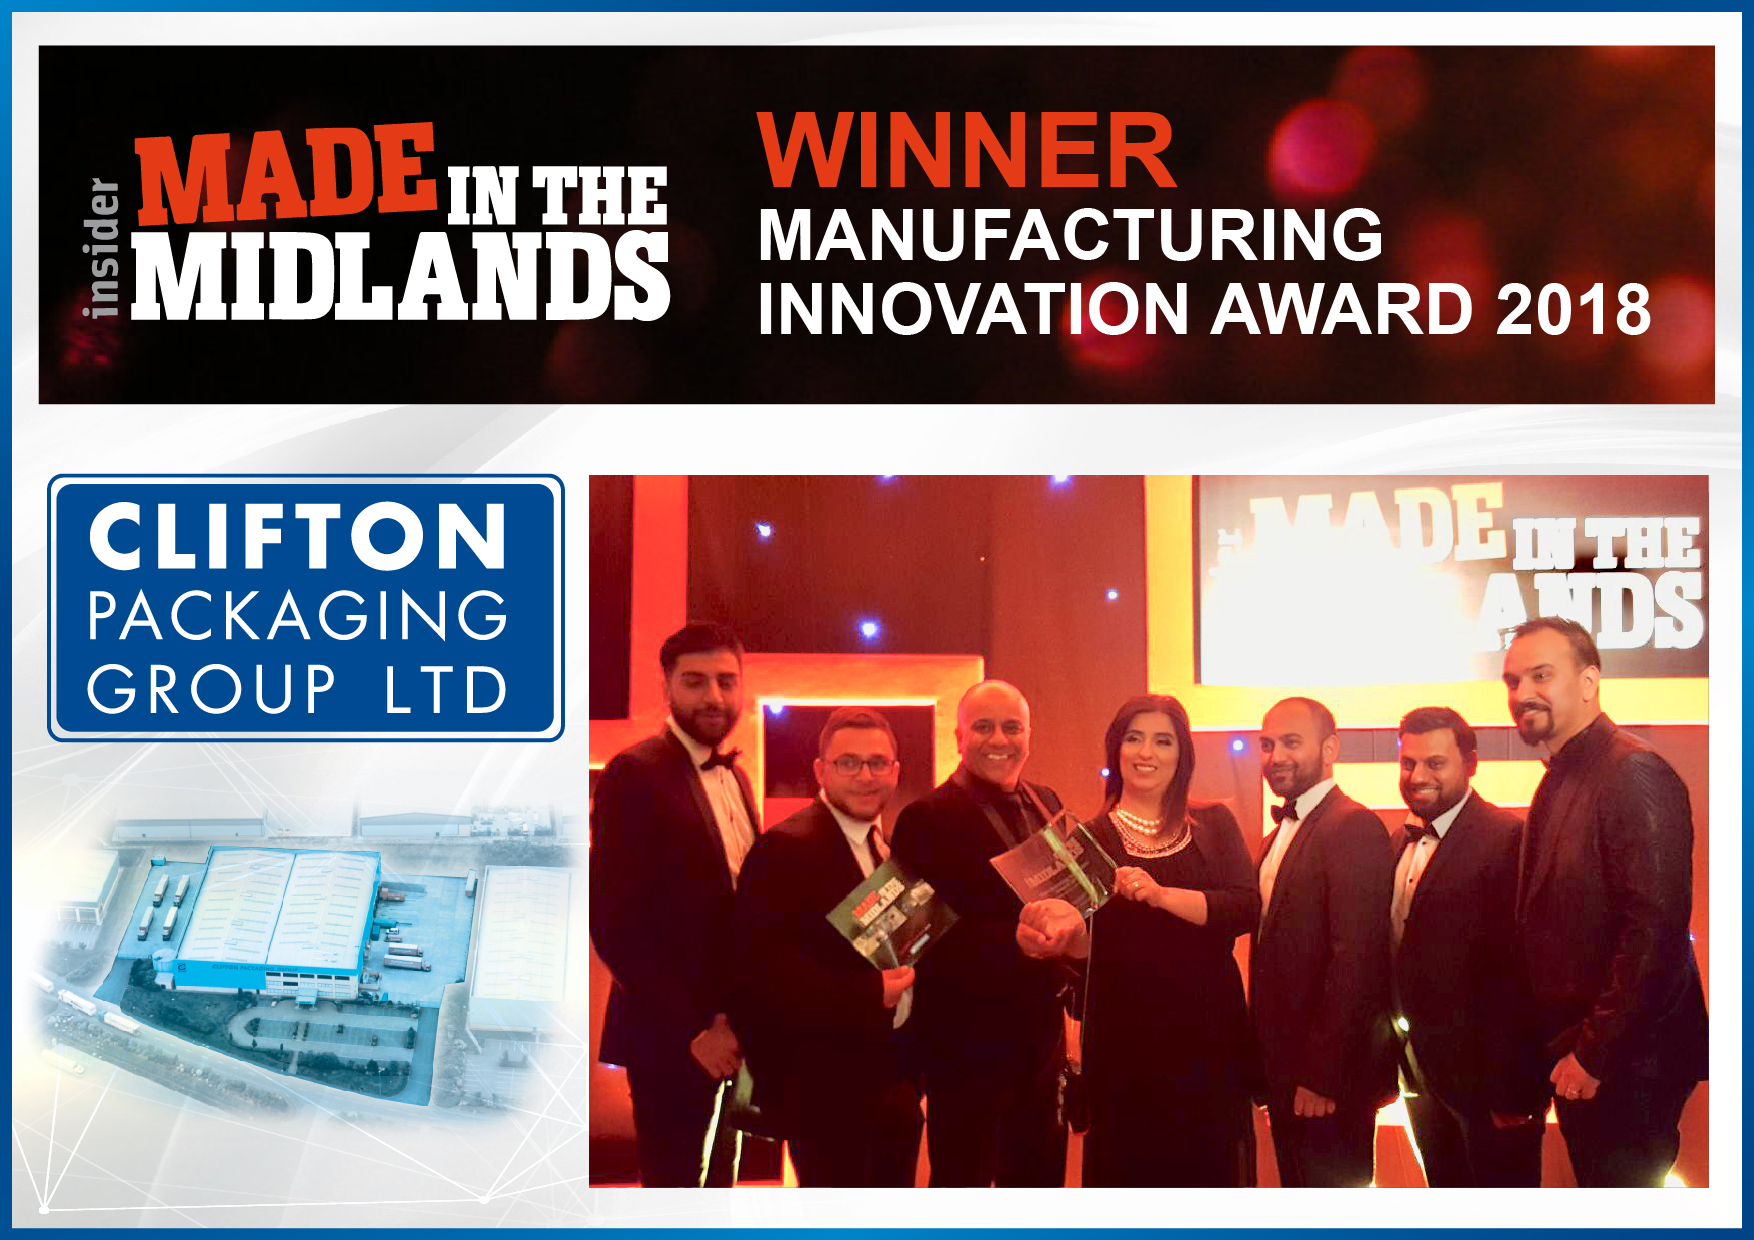 Made in the Midlands WINNER 2018